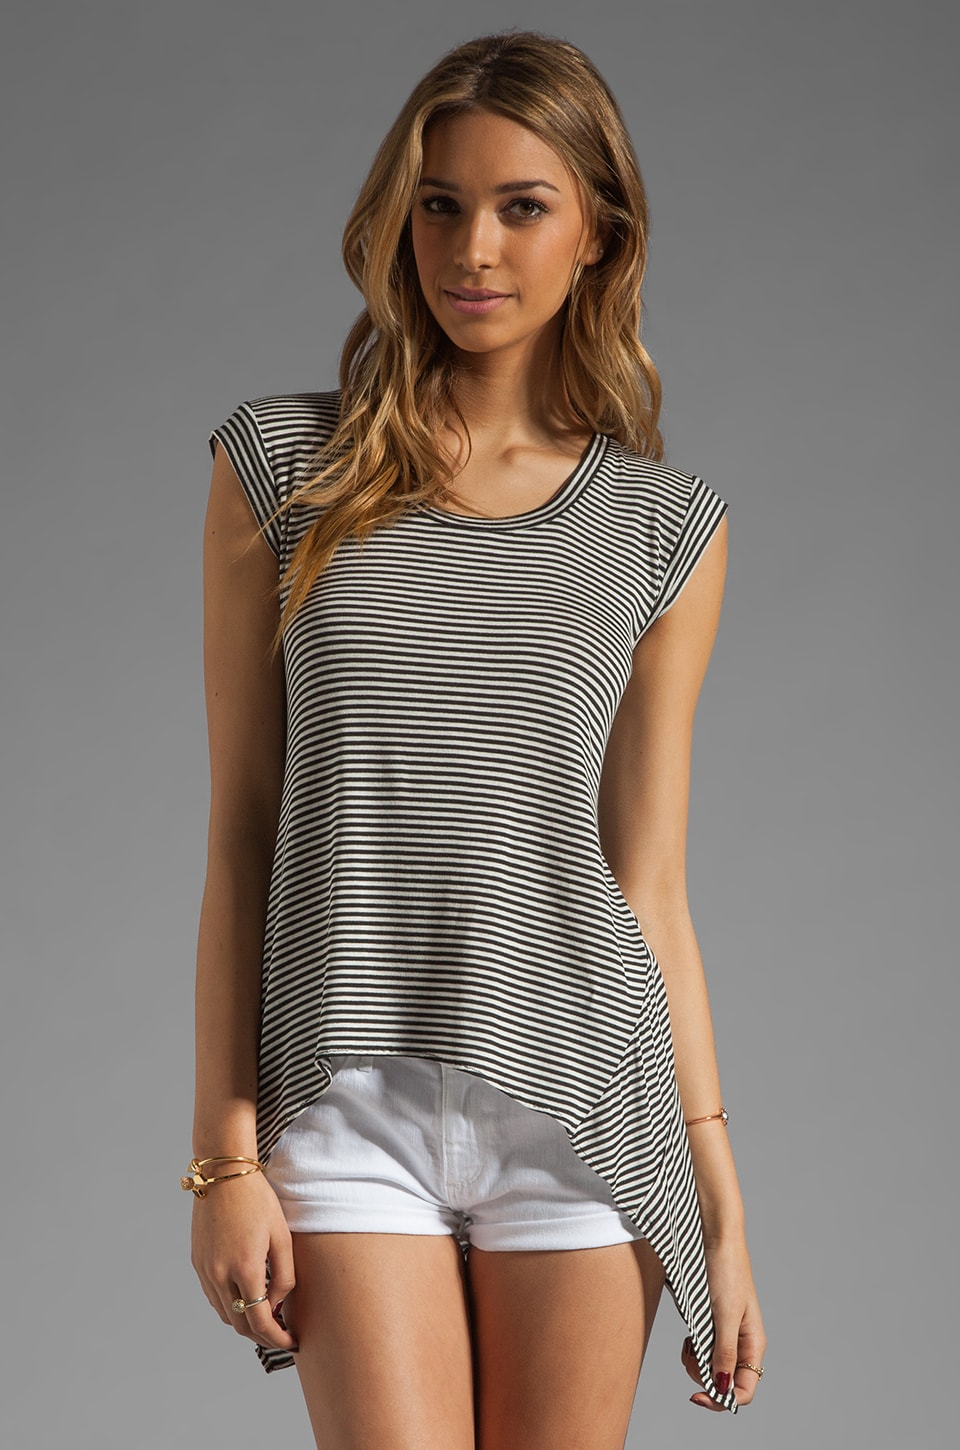 BCBGMAXAZRIA Striped Tee in Black/White